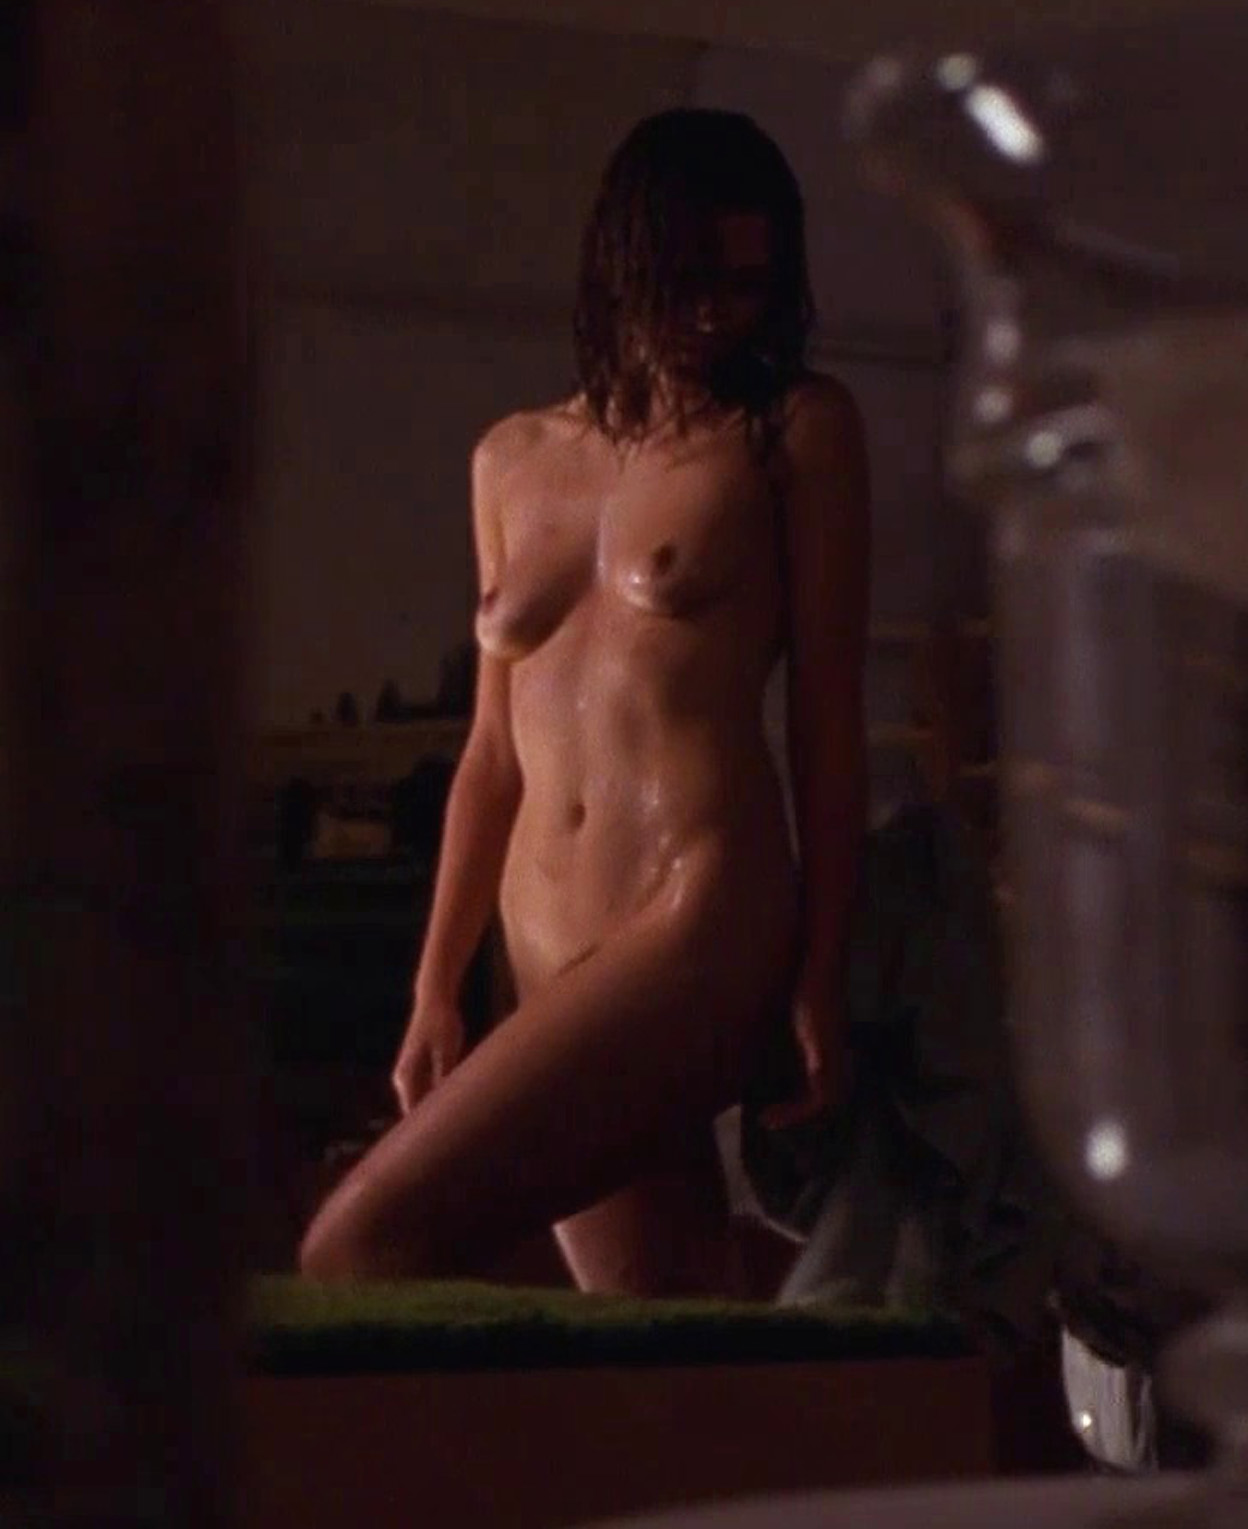 Maggie gyllenhaal nude pictures, muscle bondage